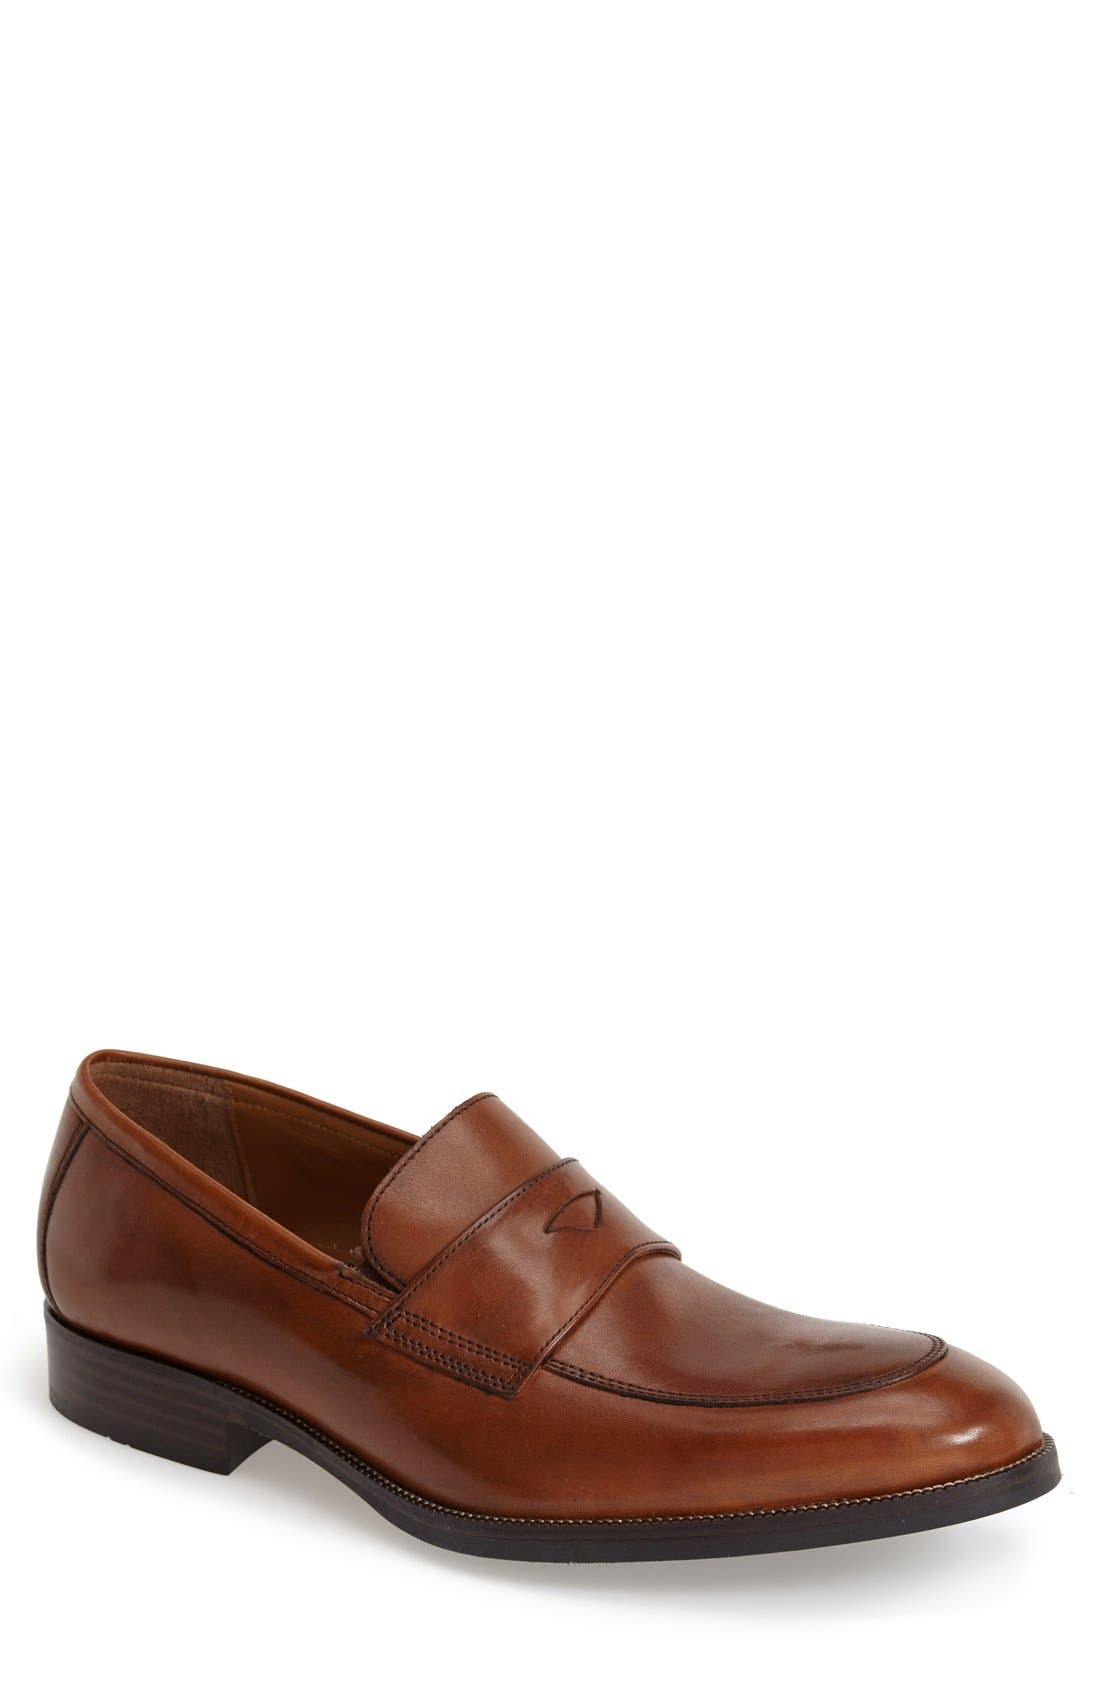 JOHNSTON & MURPHY 'Beckwith' Penny Loafer